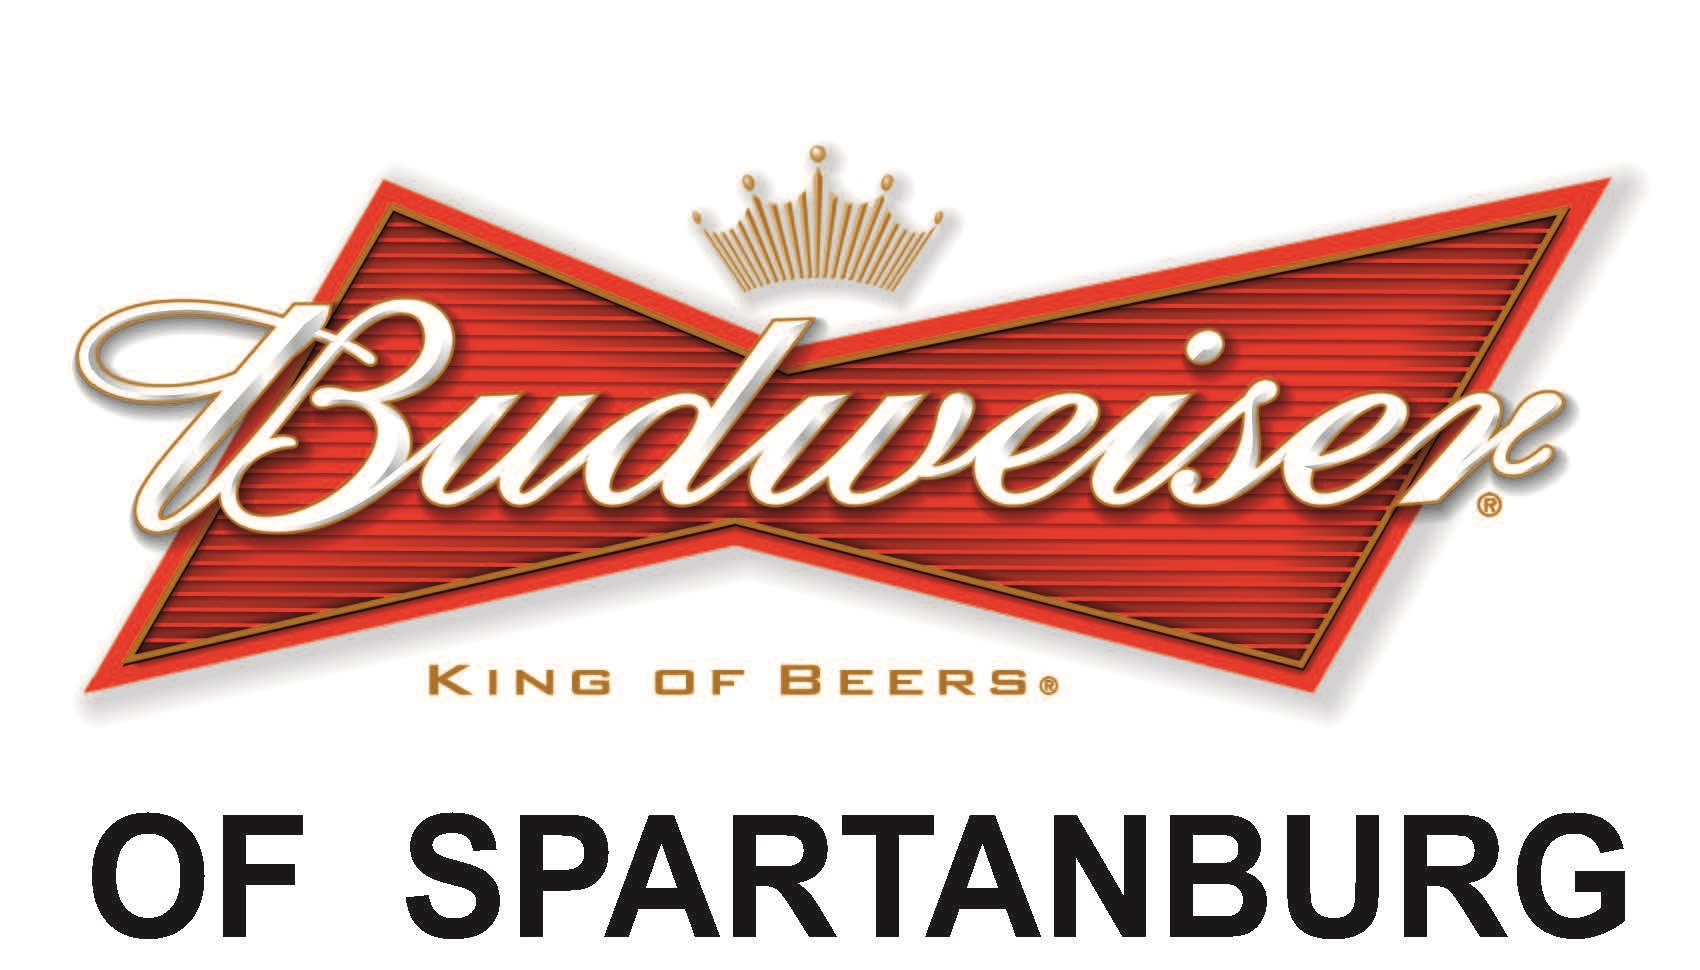 Budweiser of Spartanburg